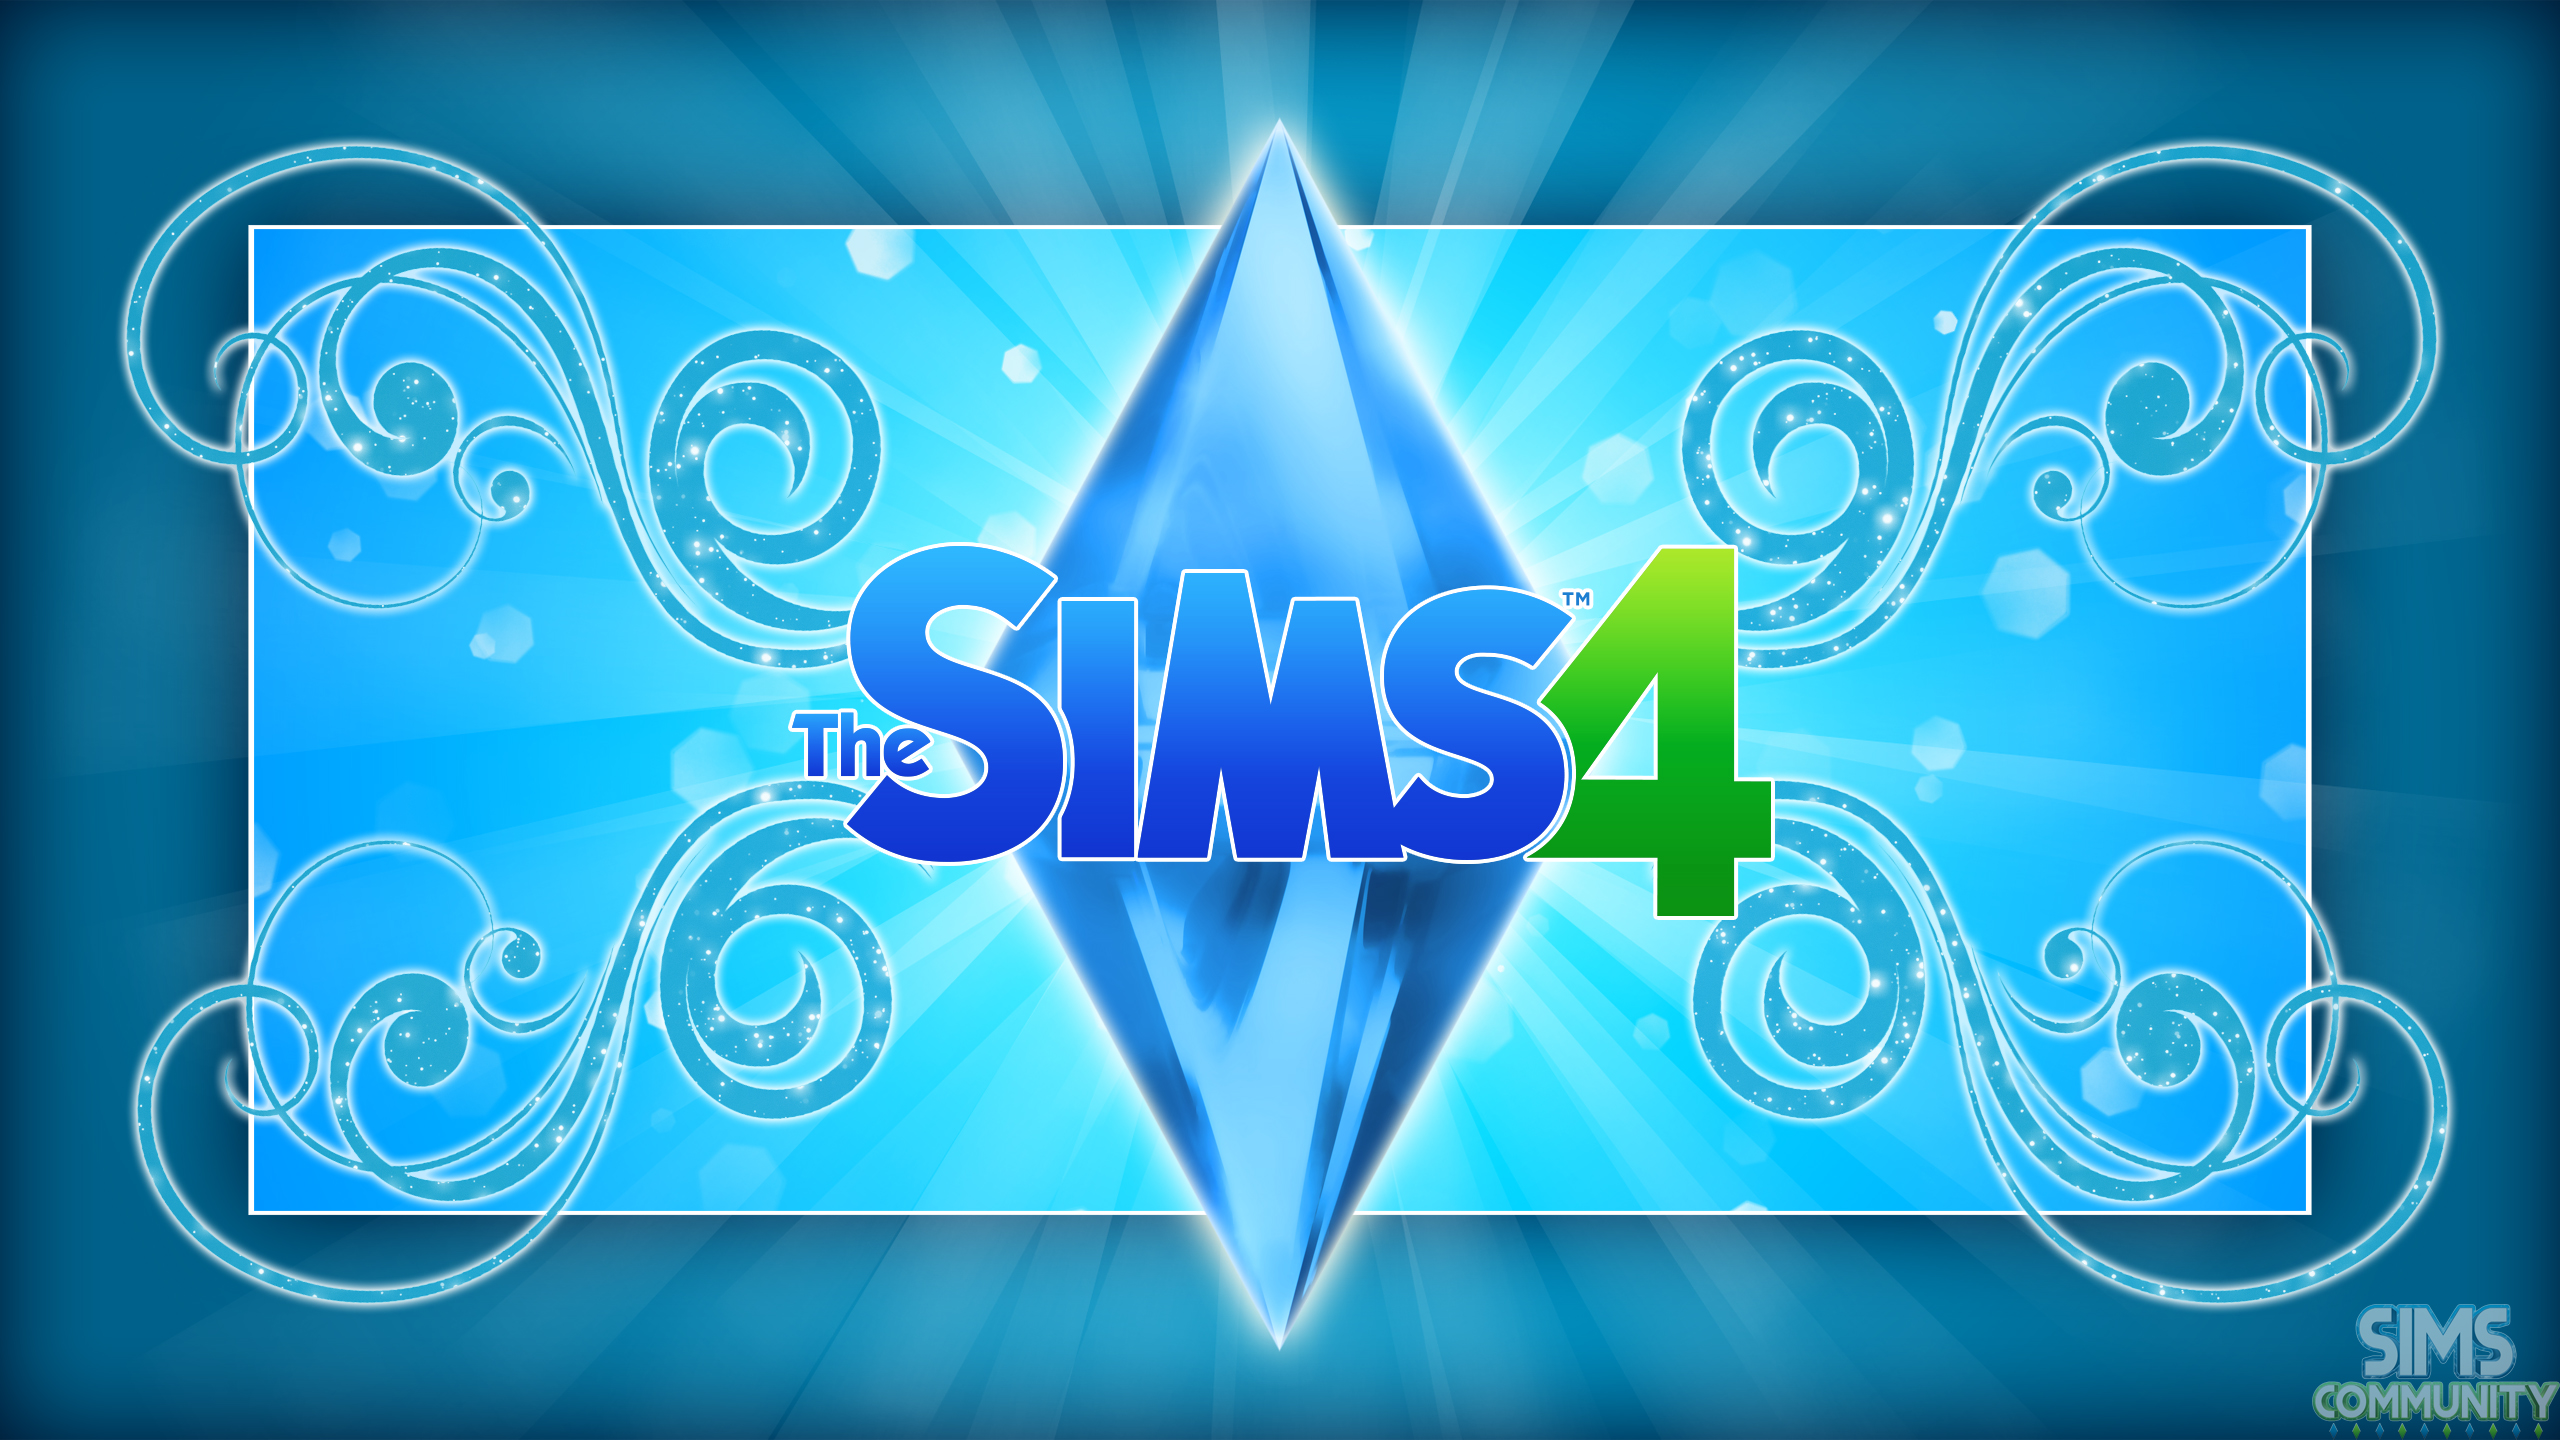 Sims 4 Cc Wallpaper Posted By Ryan Anderson